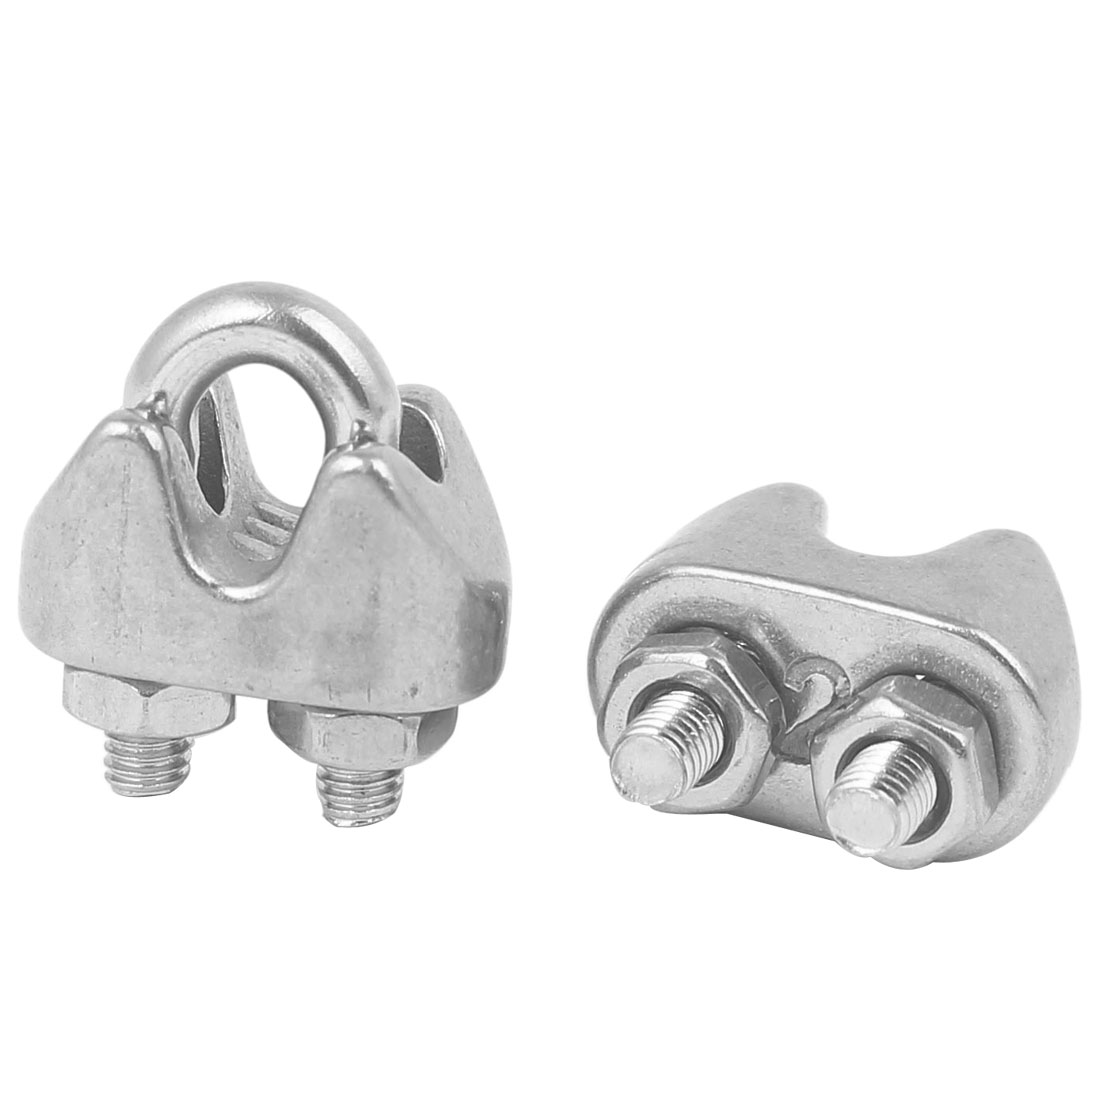 small resolution of uxcell 2pcs m2 3mm 0 12 u shape bolt saddle clamp 304 stainless steel cable